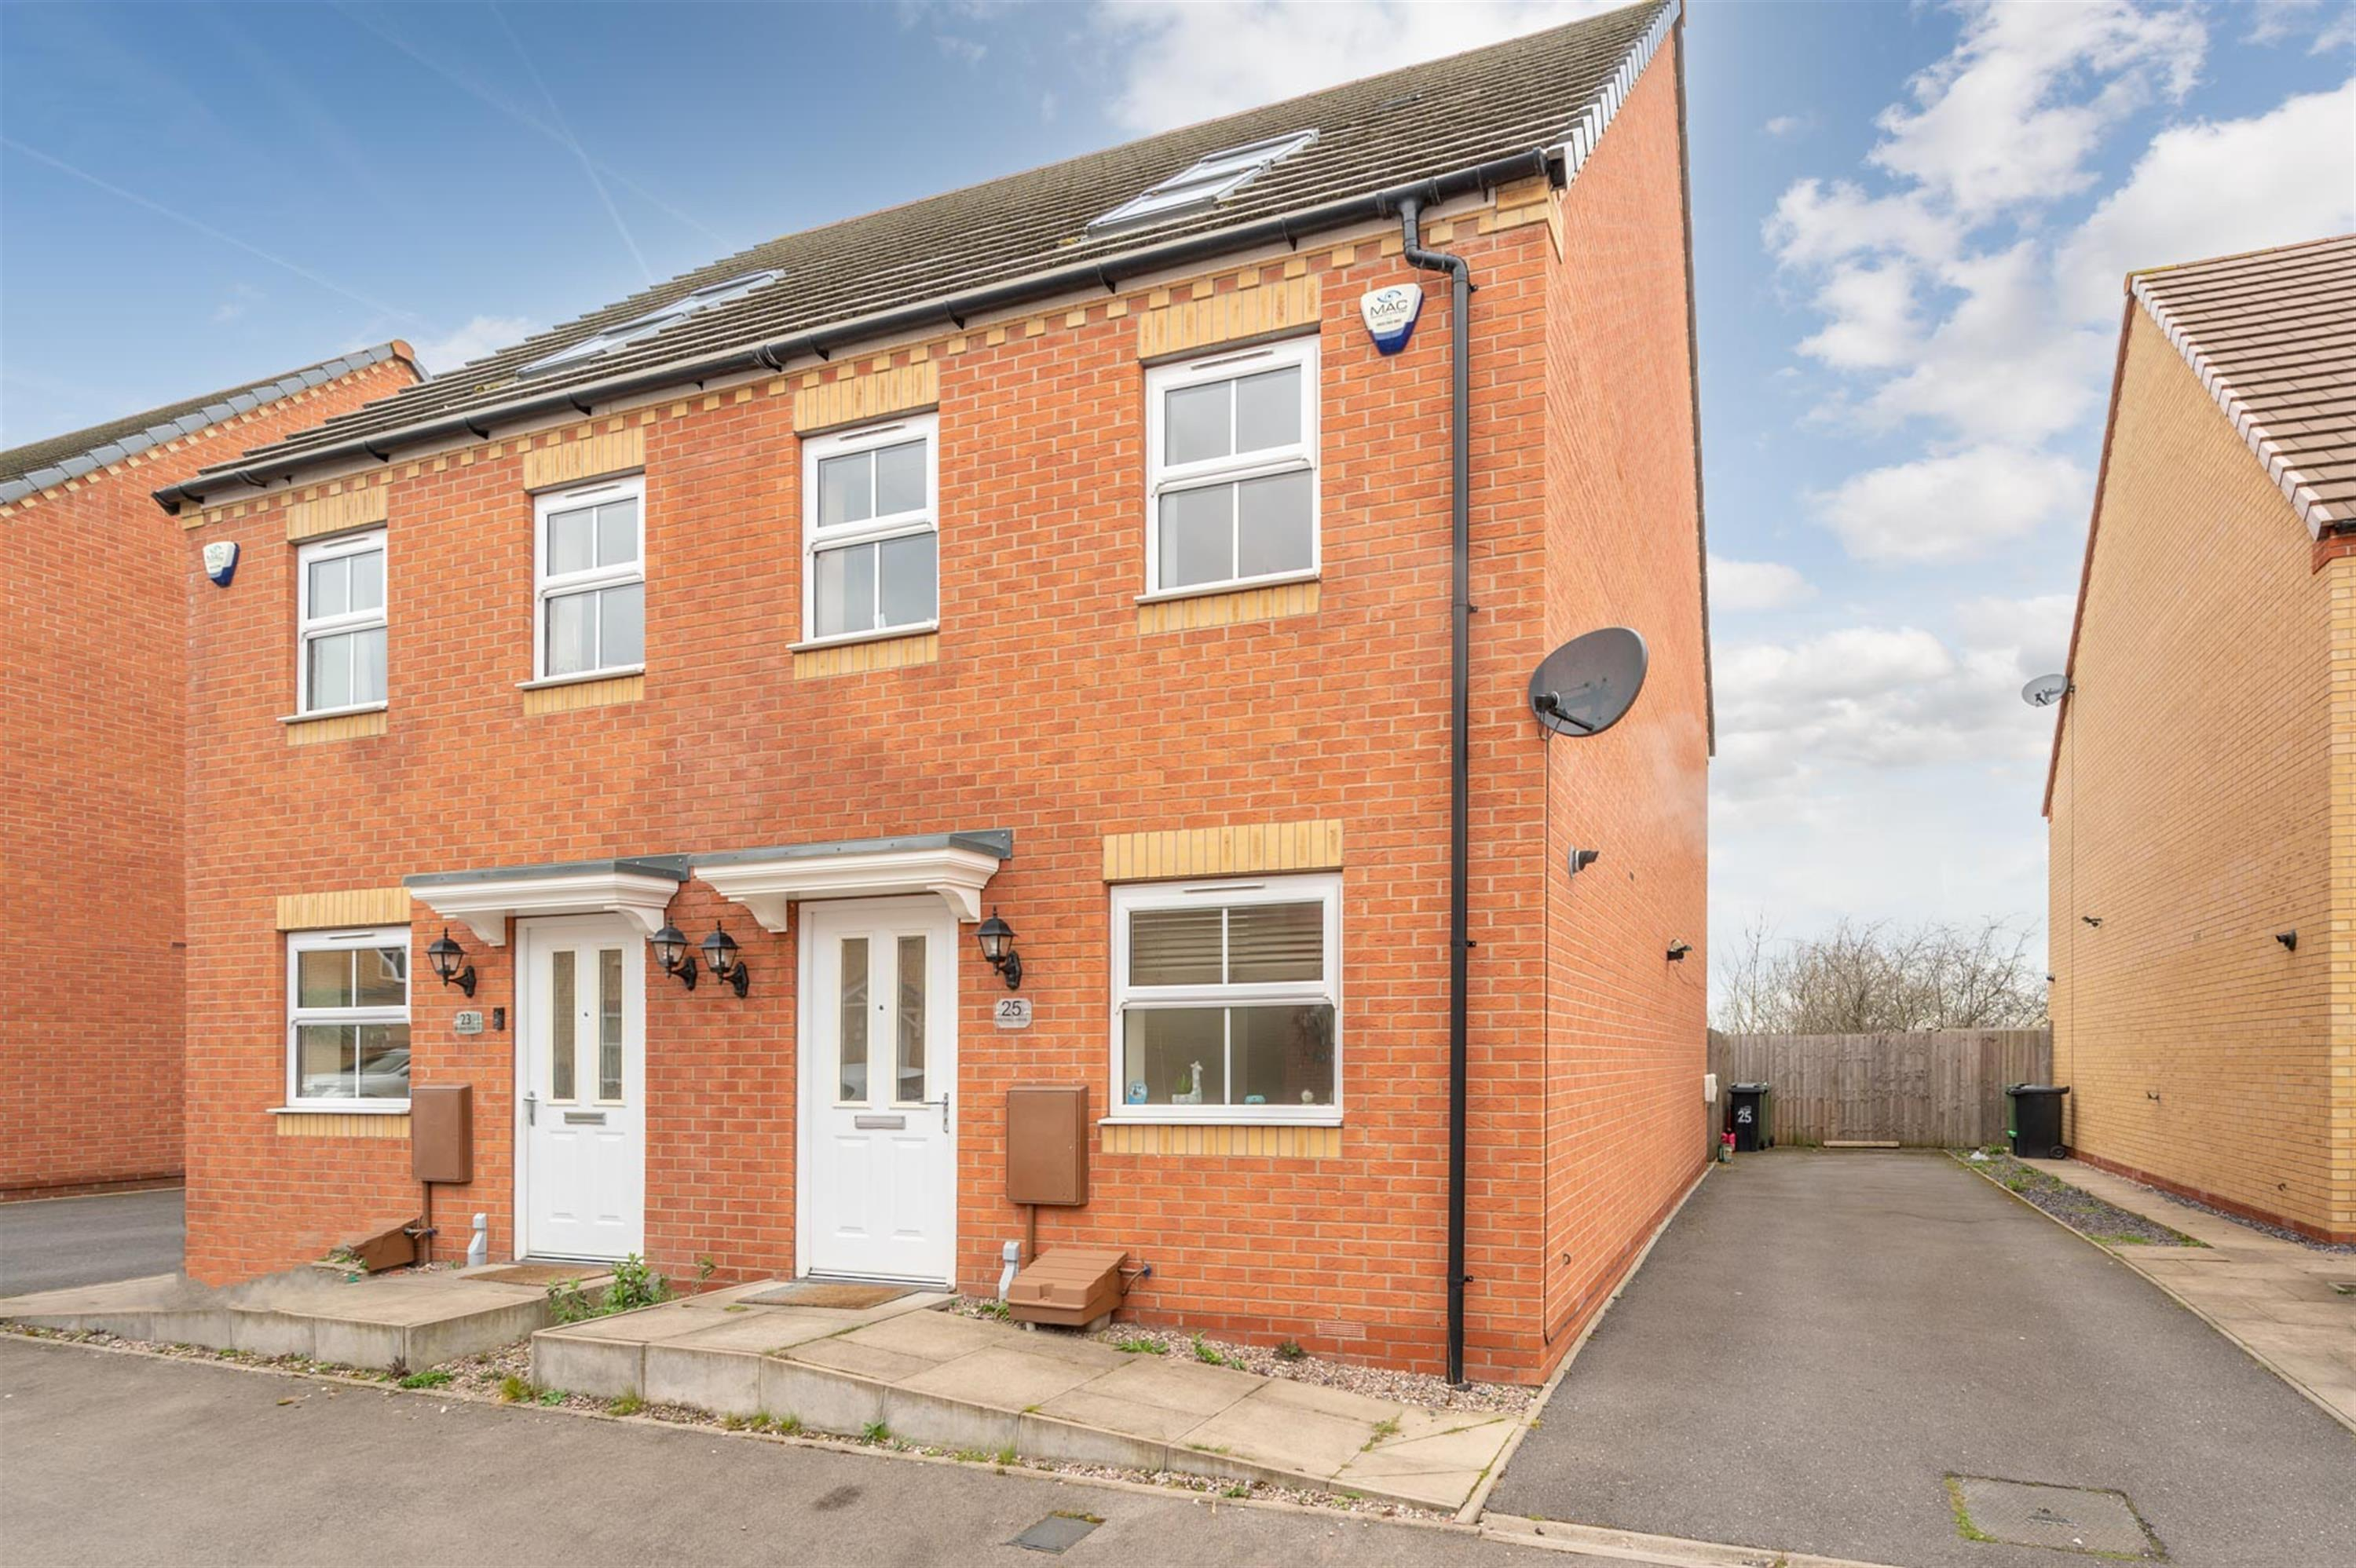 Brythill Drive, Brierley Hill, DY5 3LU